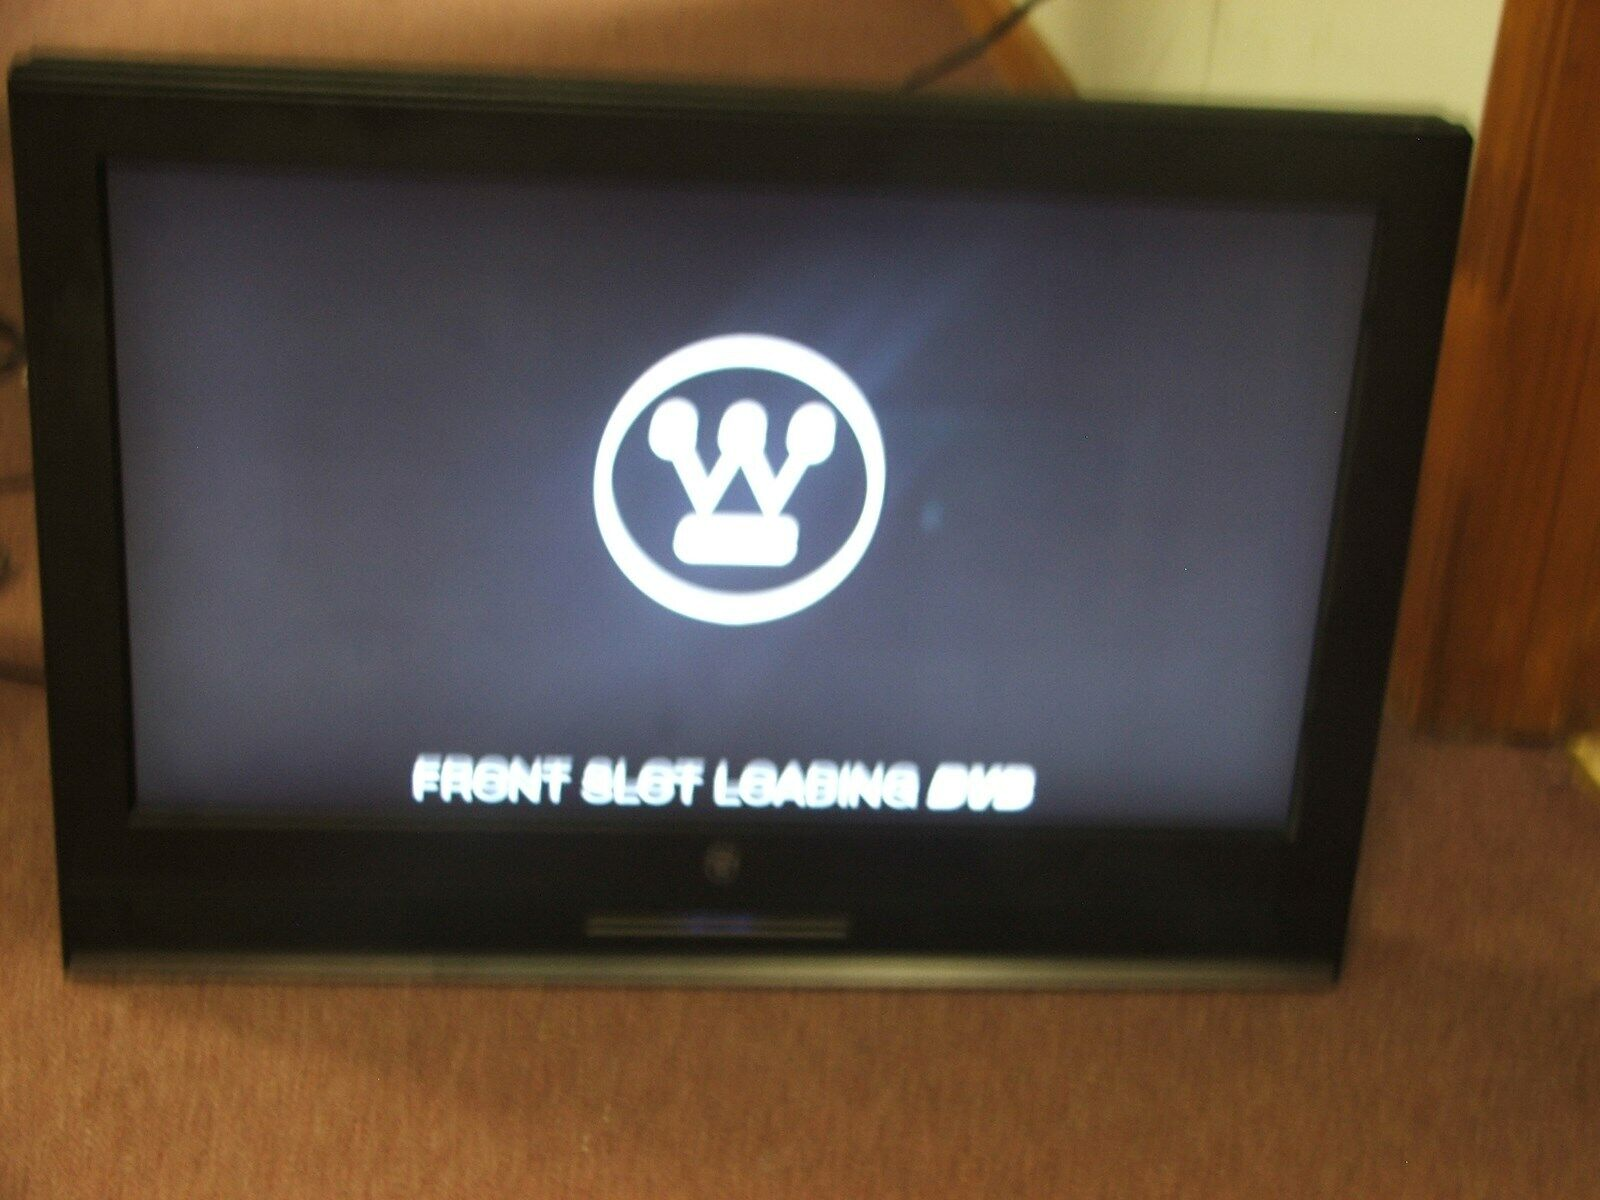 WESTINGHOUSE TV/DVD SK-26H590D WITH NEW WALL MOUNT(DVD NOT WORKING)